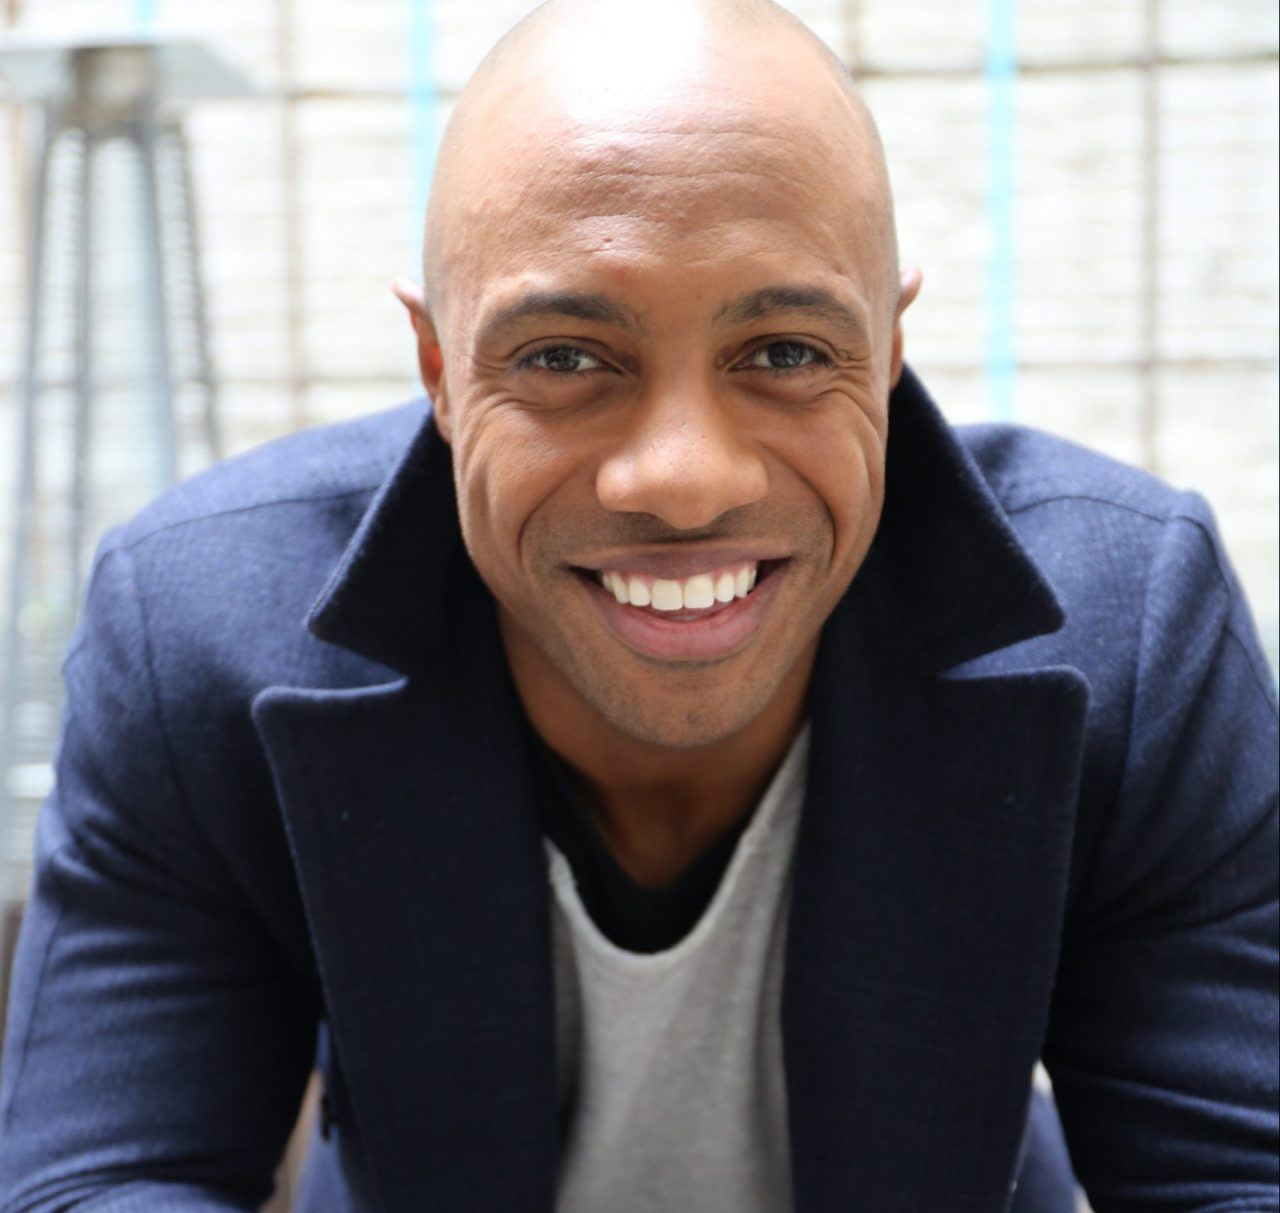 ESPN's Jay Williams Is Building a Business Empire Behind the Scenes